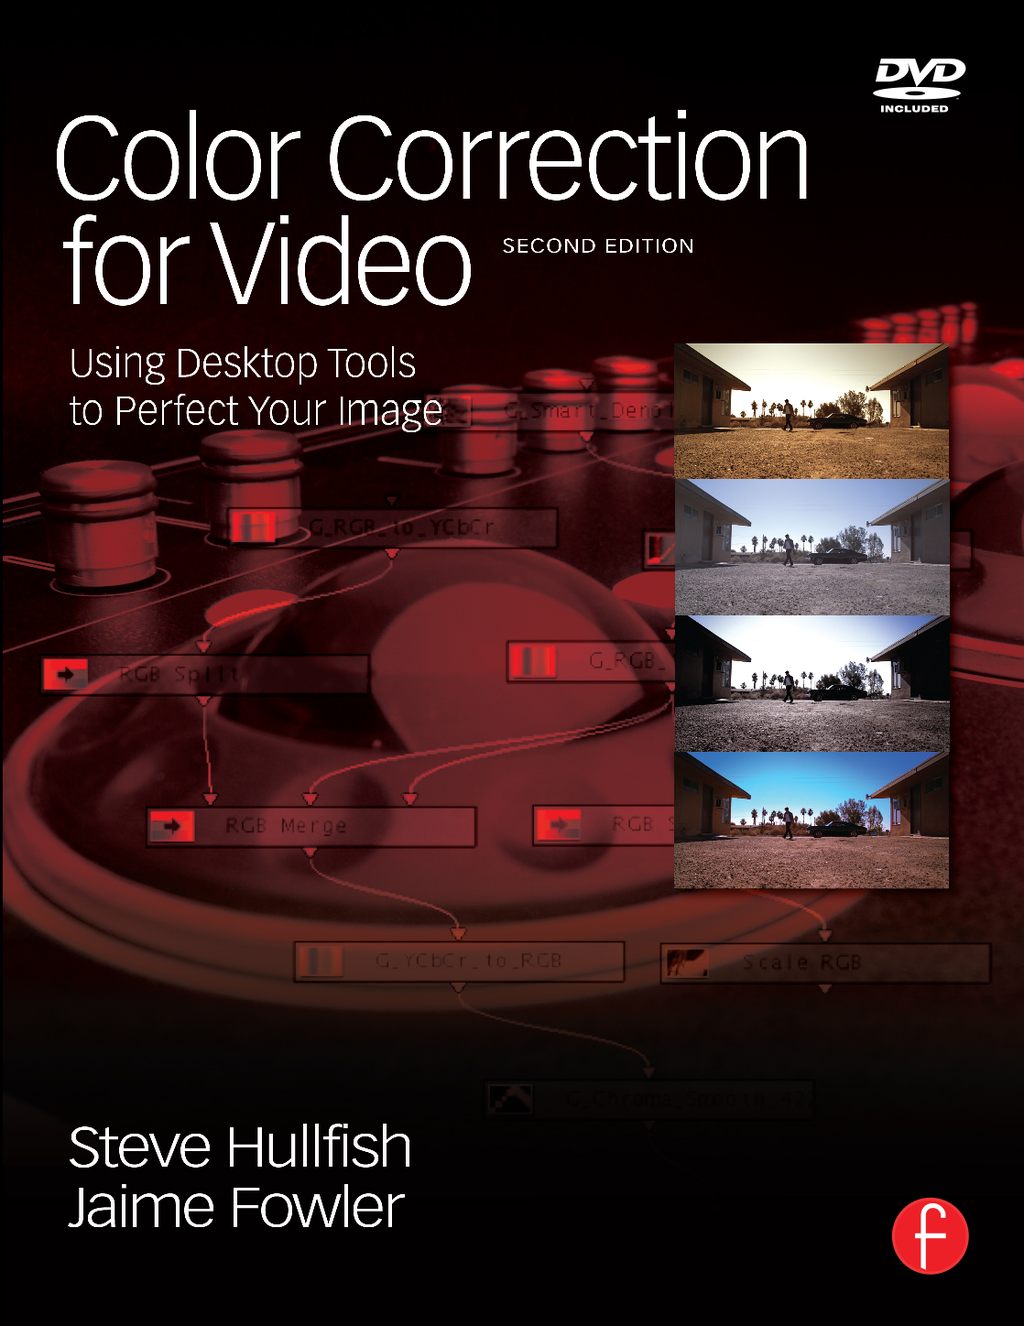 Color Correction for Video Using Desktop Tools to Perfect Your Image